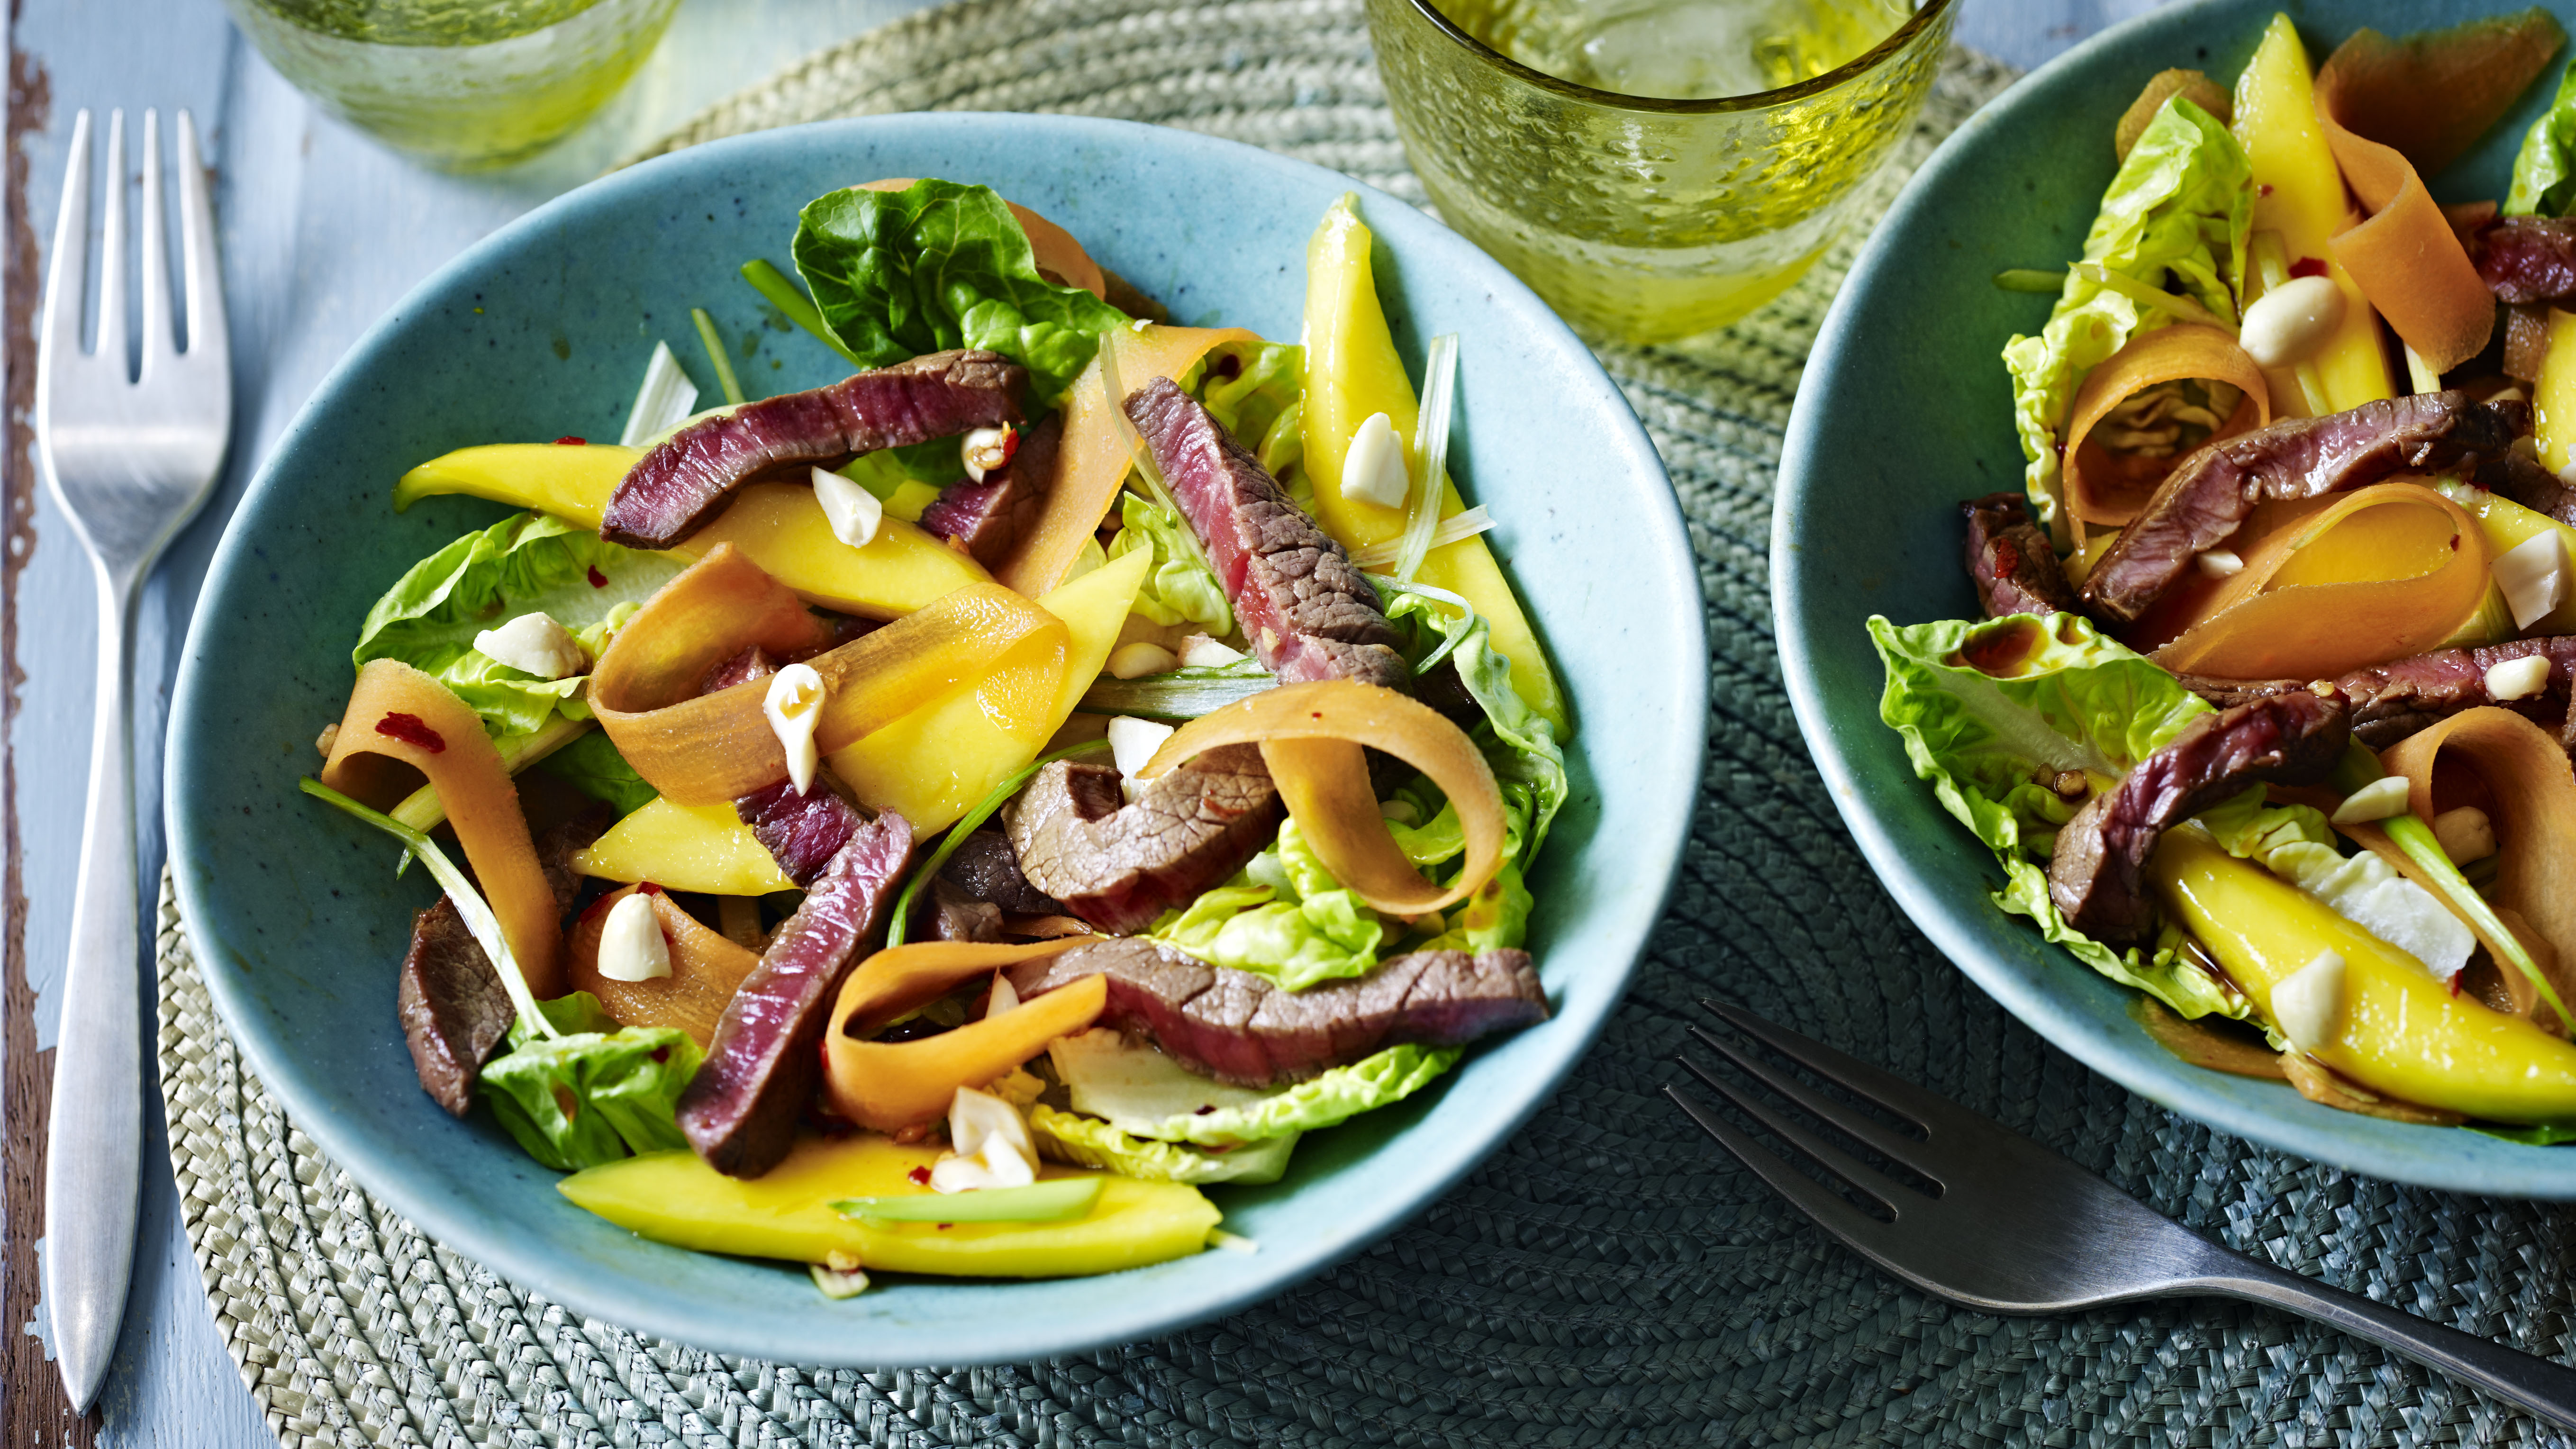 Berlin salad: well show you how to cook